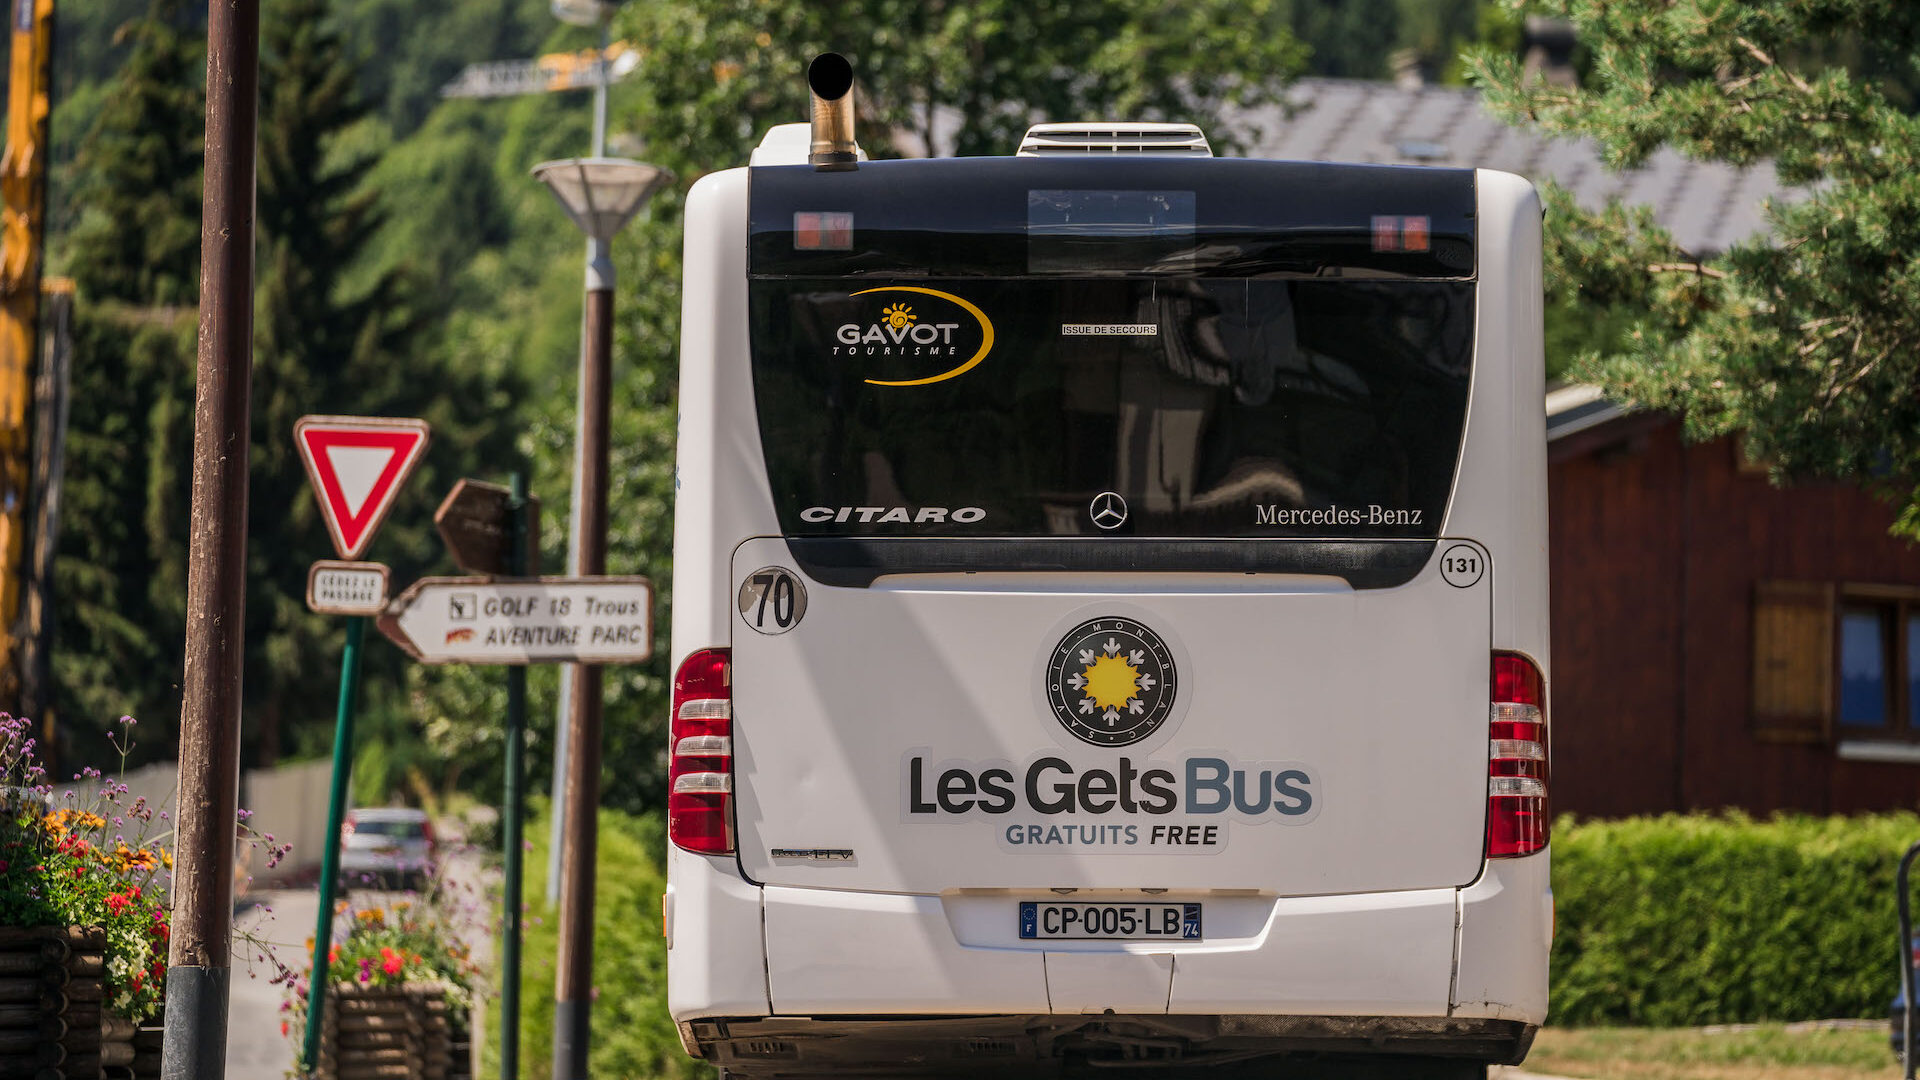 Free shuttle driving in Les Gets village